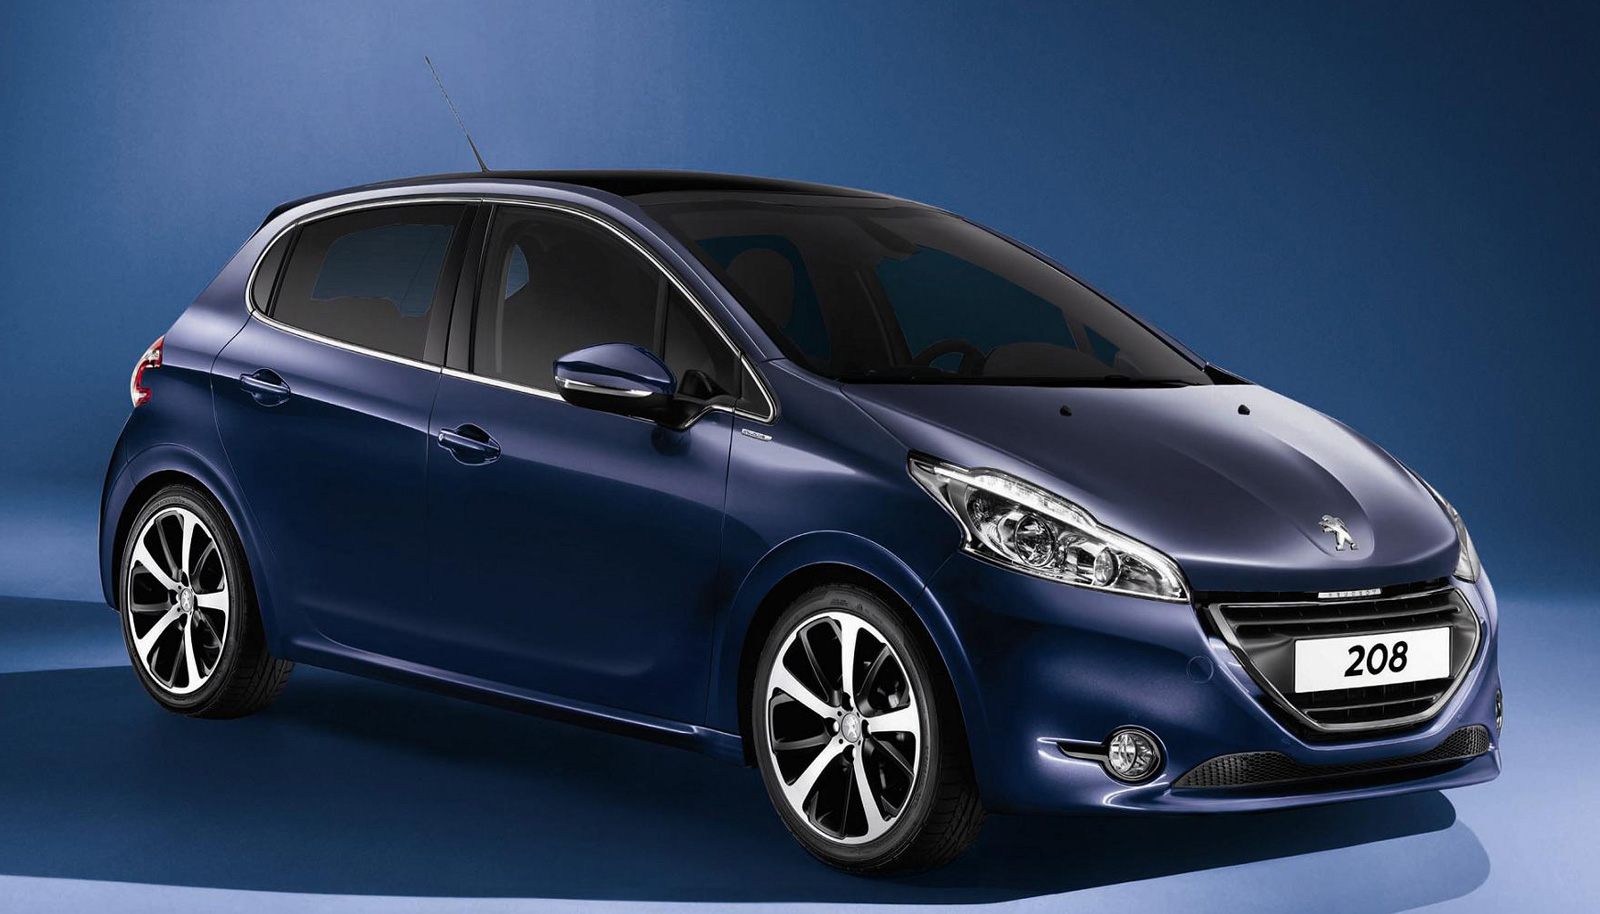 New Peugeot 208 All Set For Mid-April Malaysian Launch